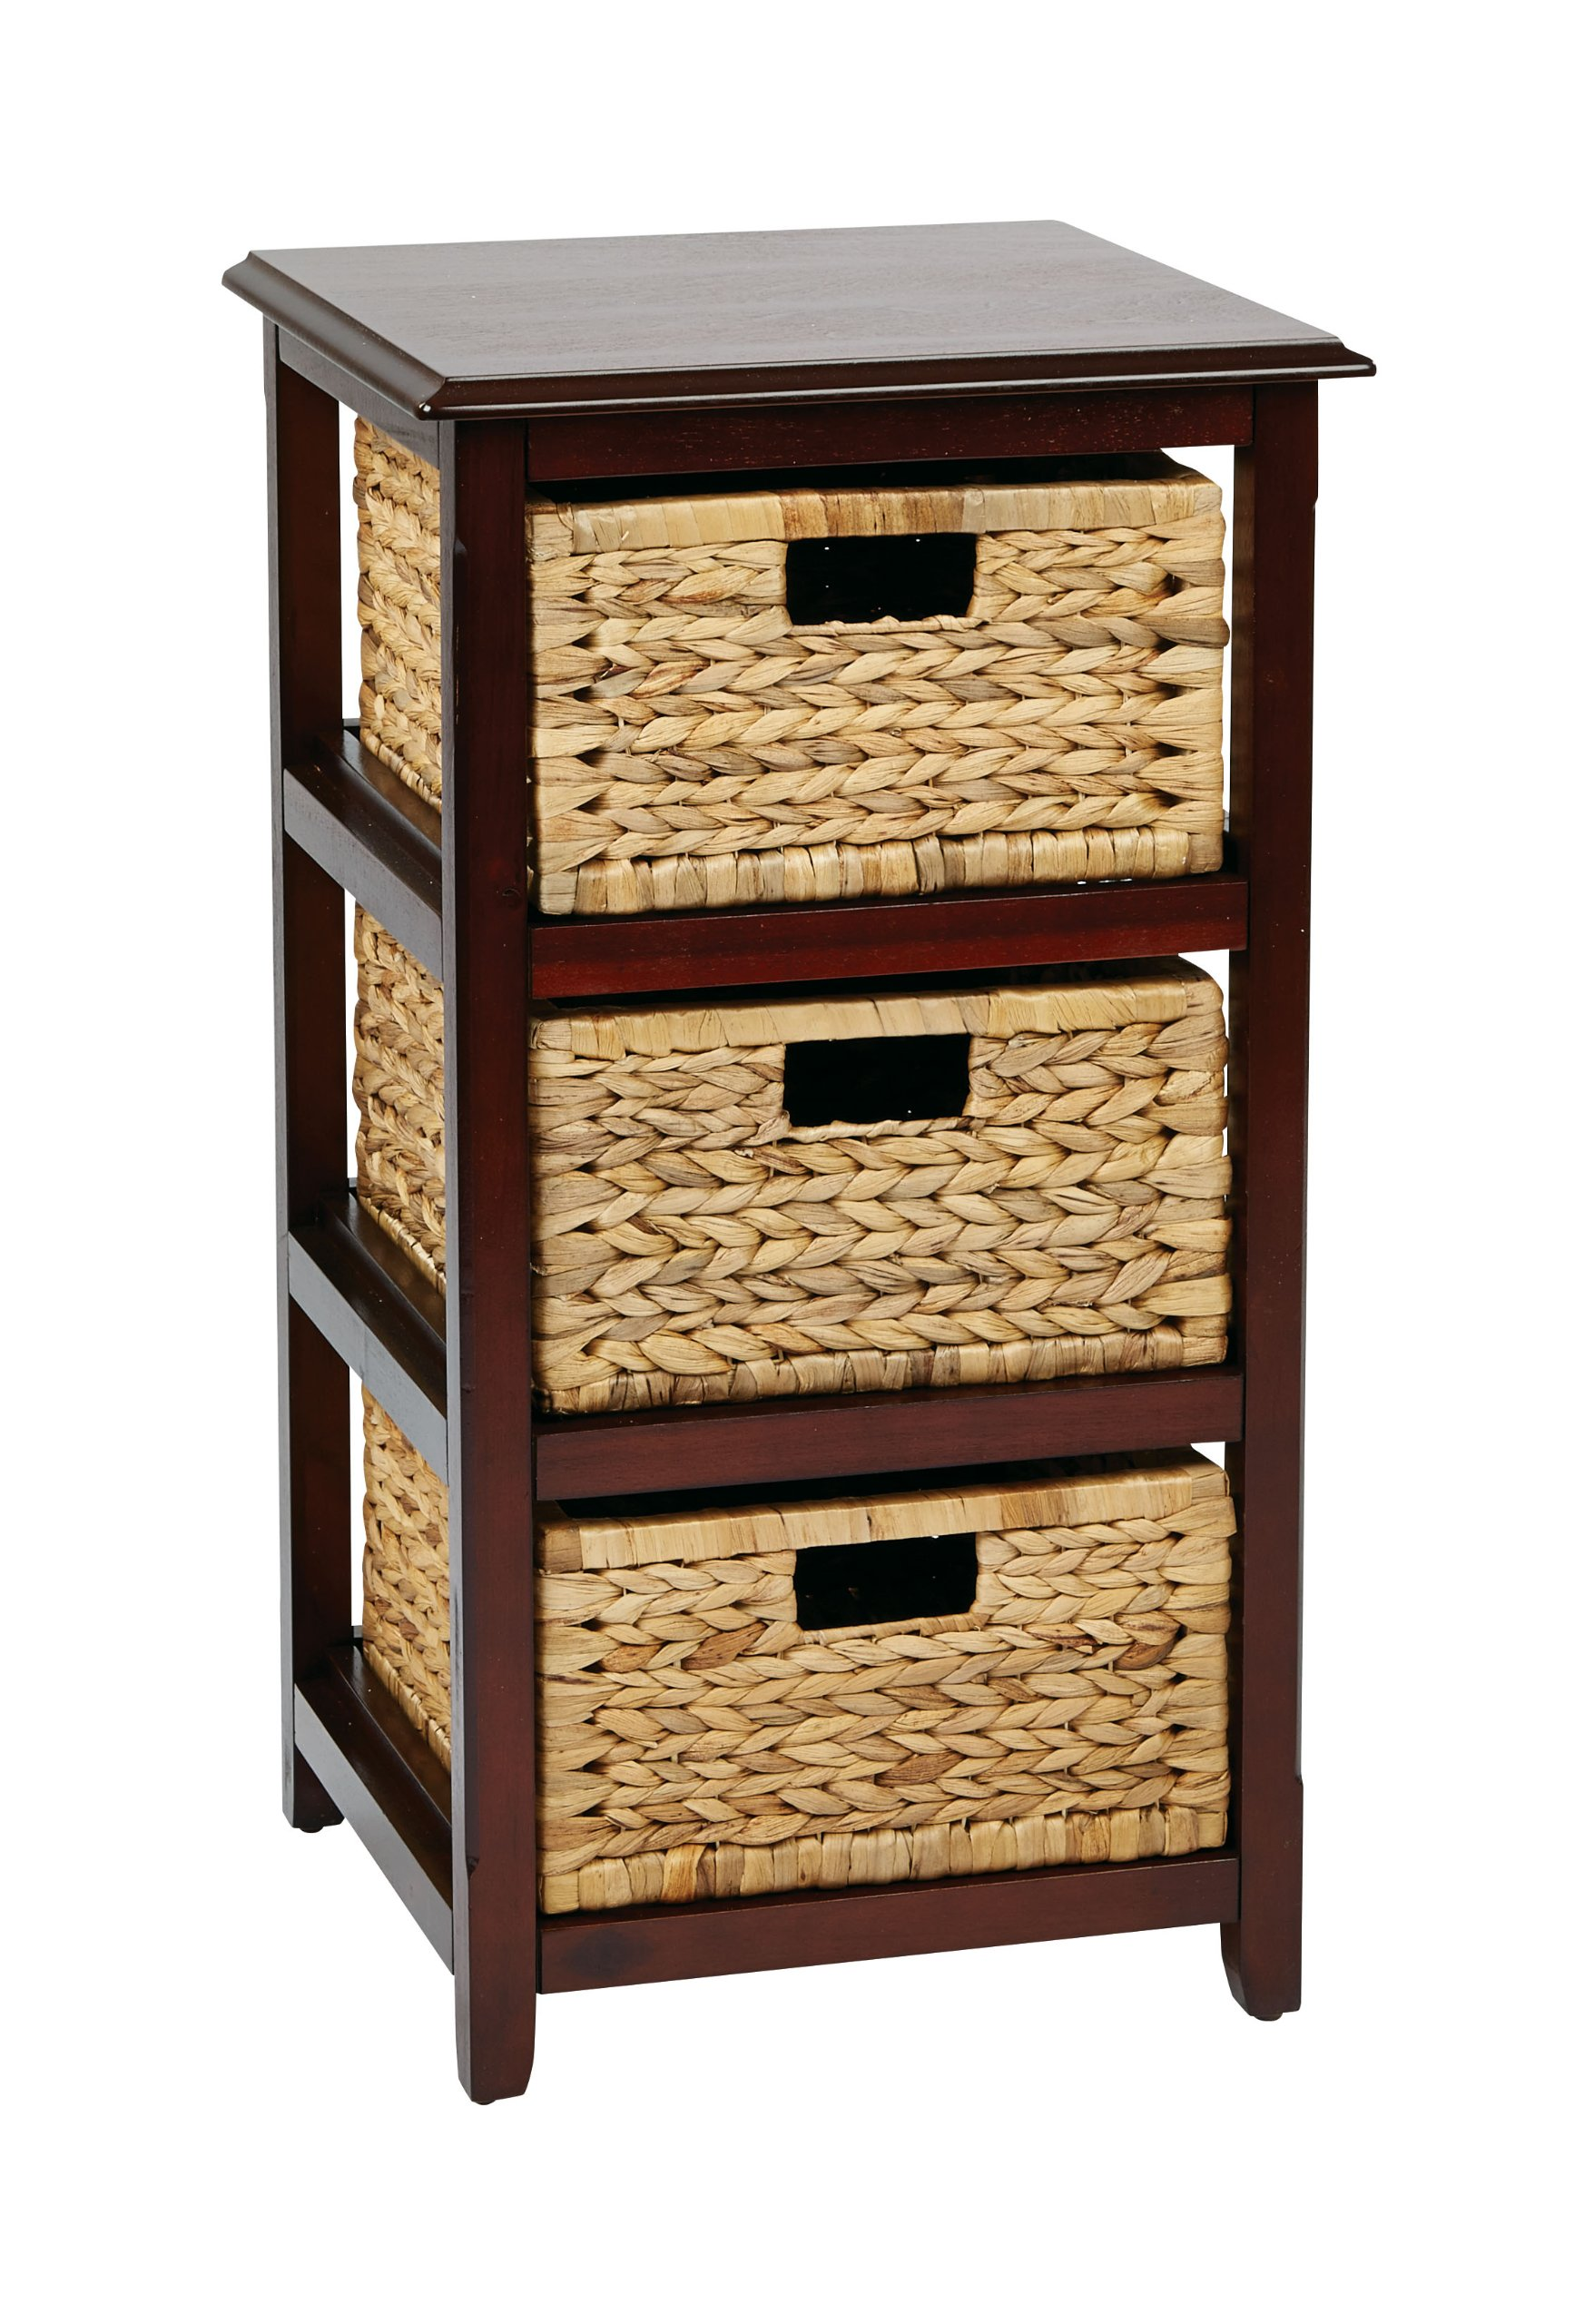 Office Star Seabrook 3-Tier Storage Unit with Natural Baskets, Espresso Finish